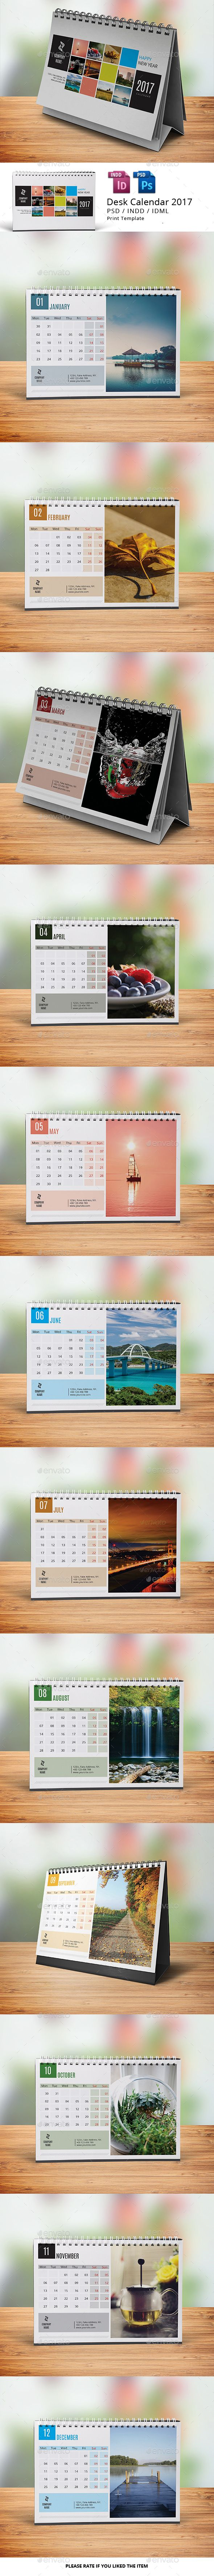 Desk Calendar 2017 Design Template - Calendars Stationery Design Template PSD, InDesign INDD. Download here: https://graphicriver.net/item/desk-calendar-2017/18722710?ref=yinkira